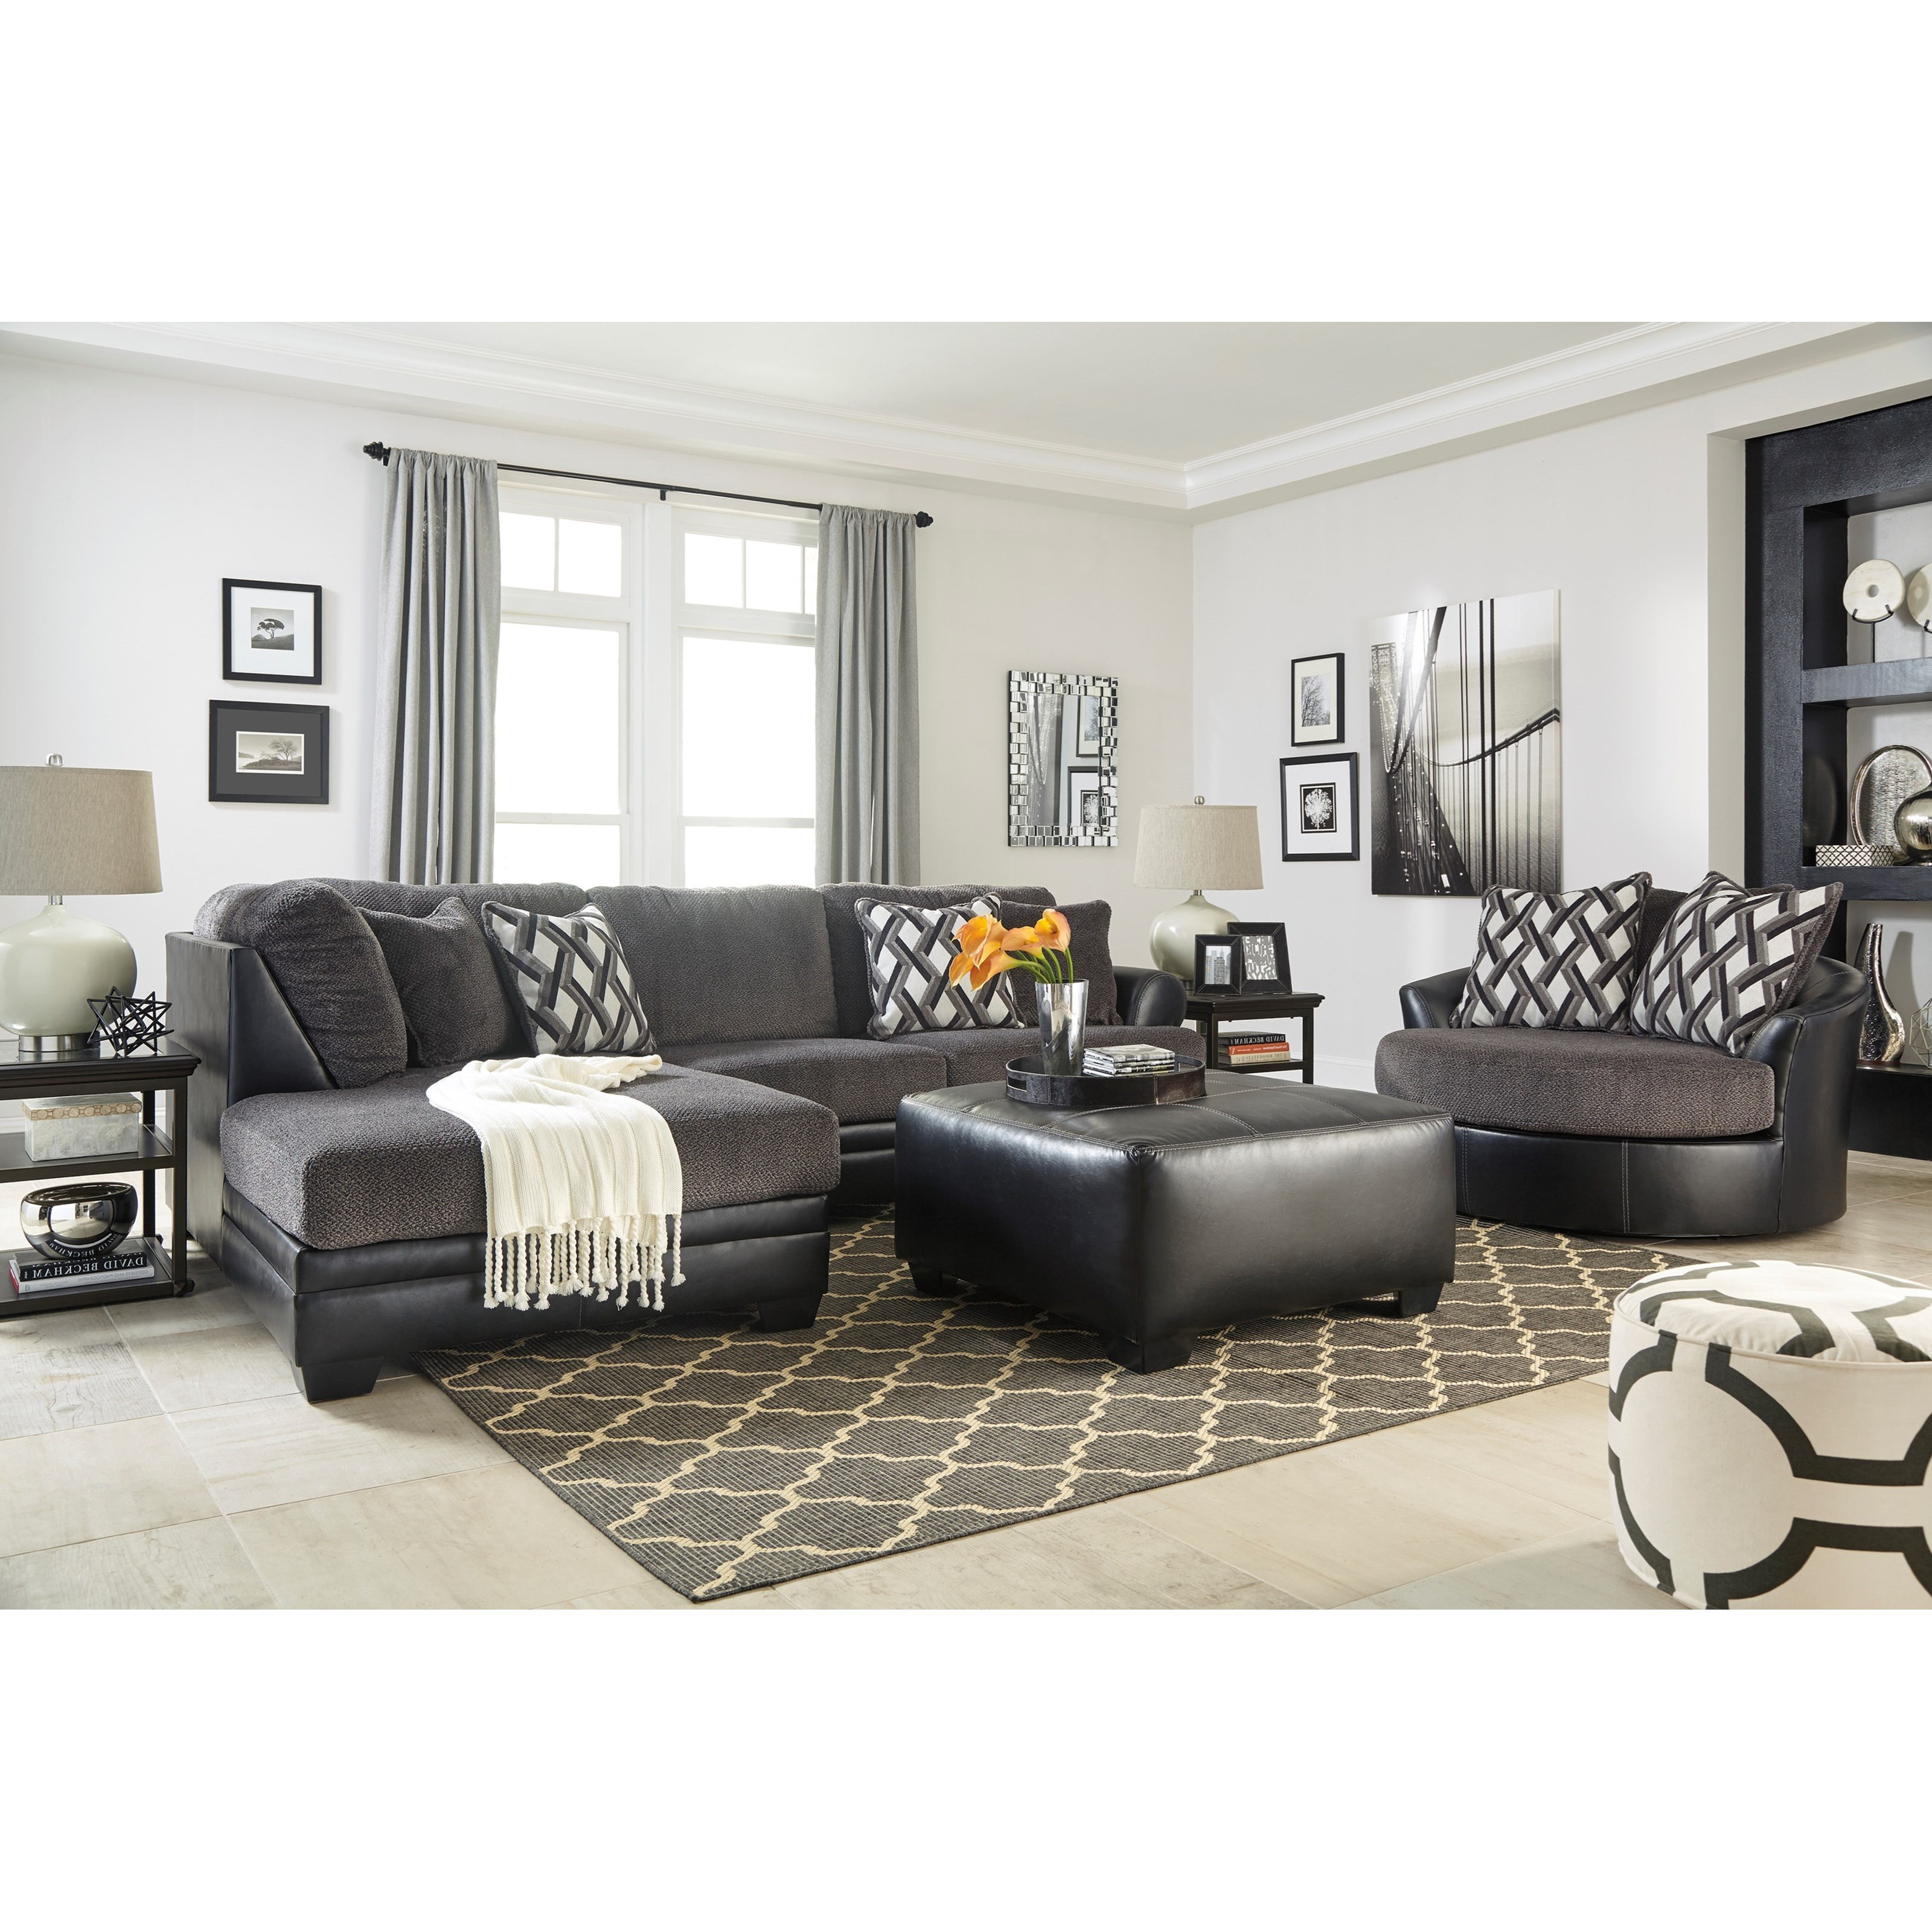 Kumasi 4pc Living Room Group by Benchcraft at Value City Furniture